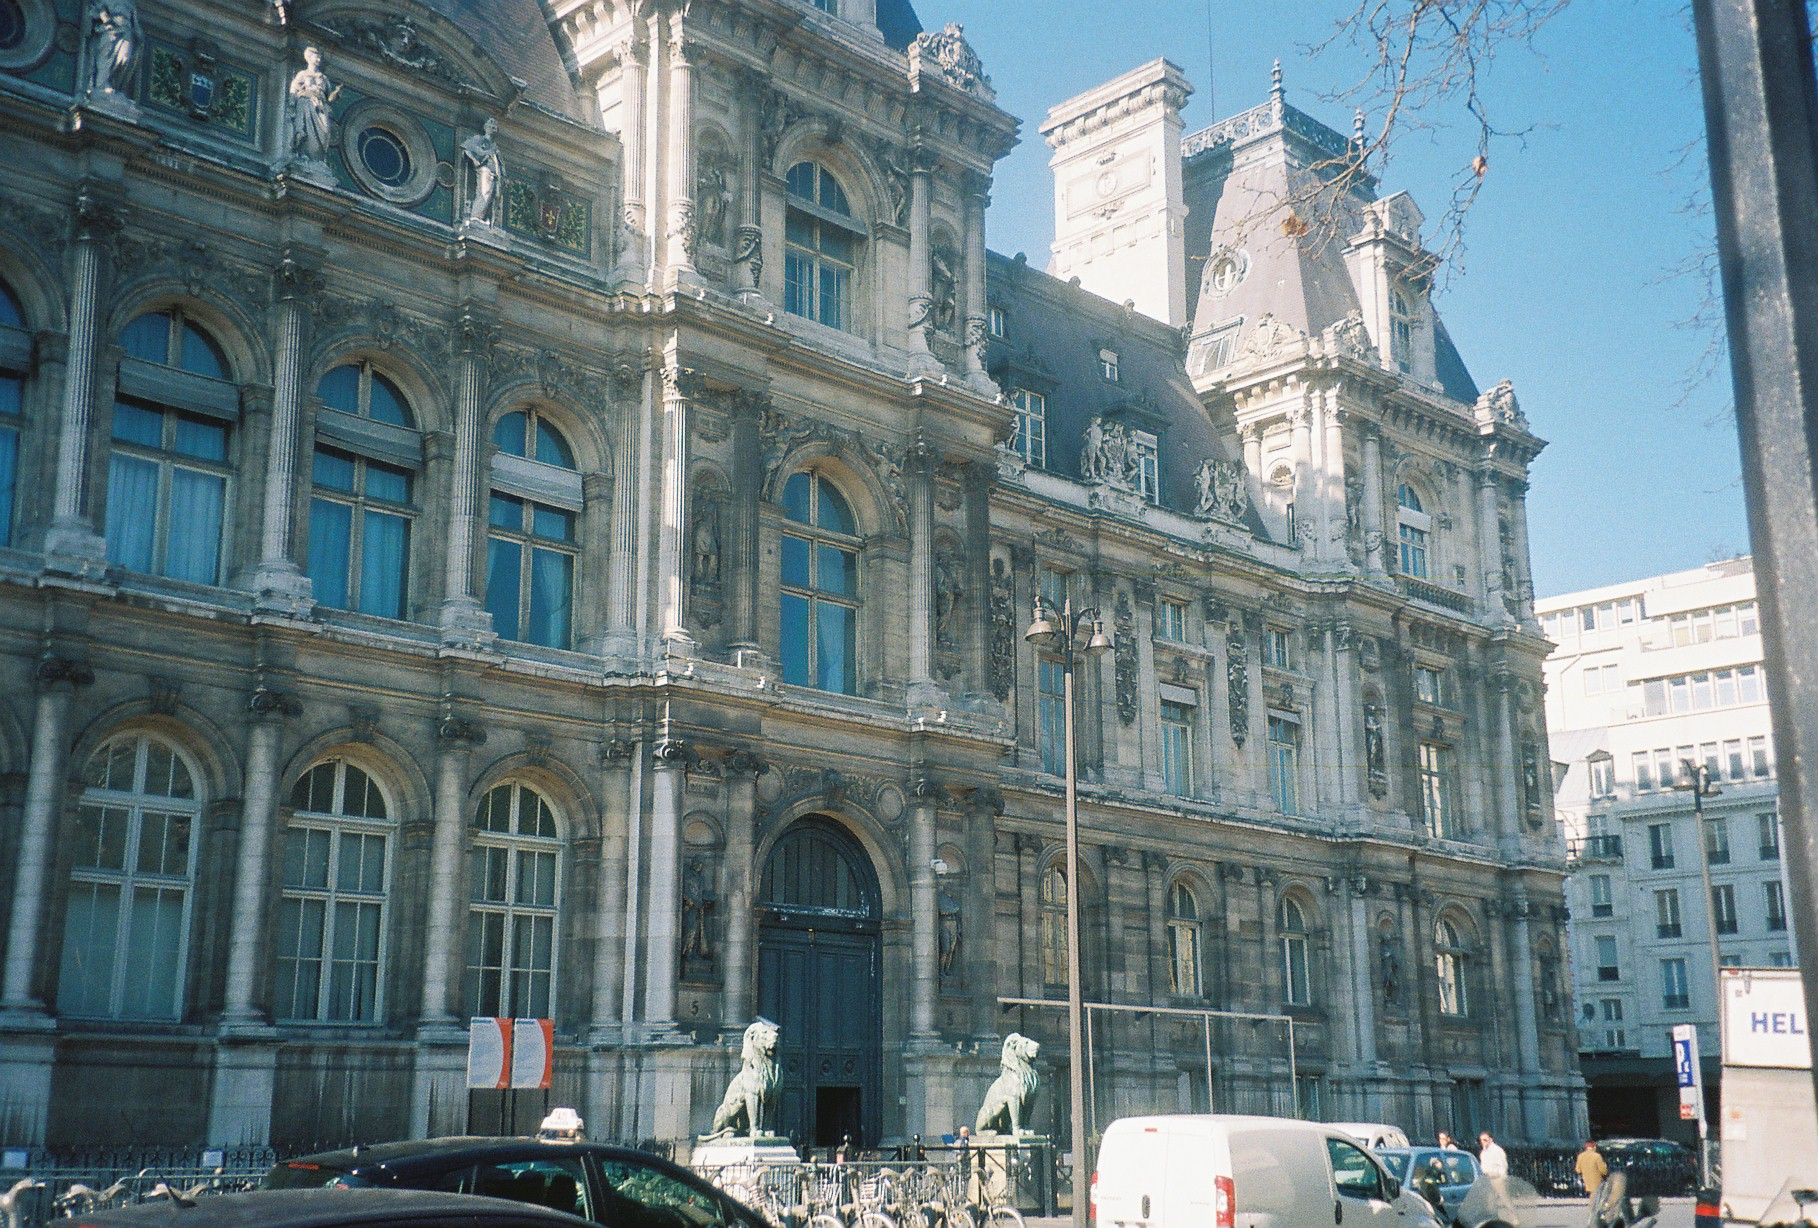 Paris hotel de ville front feb2011